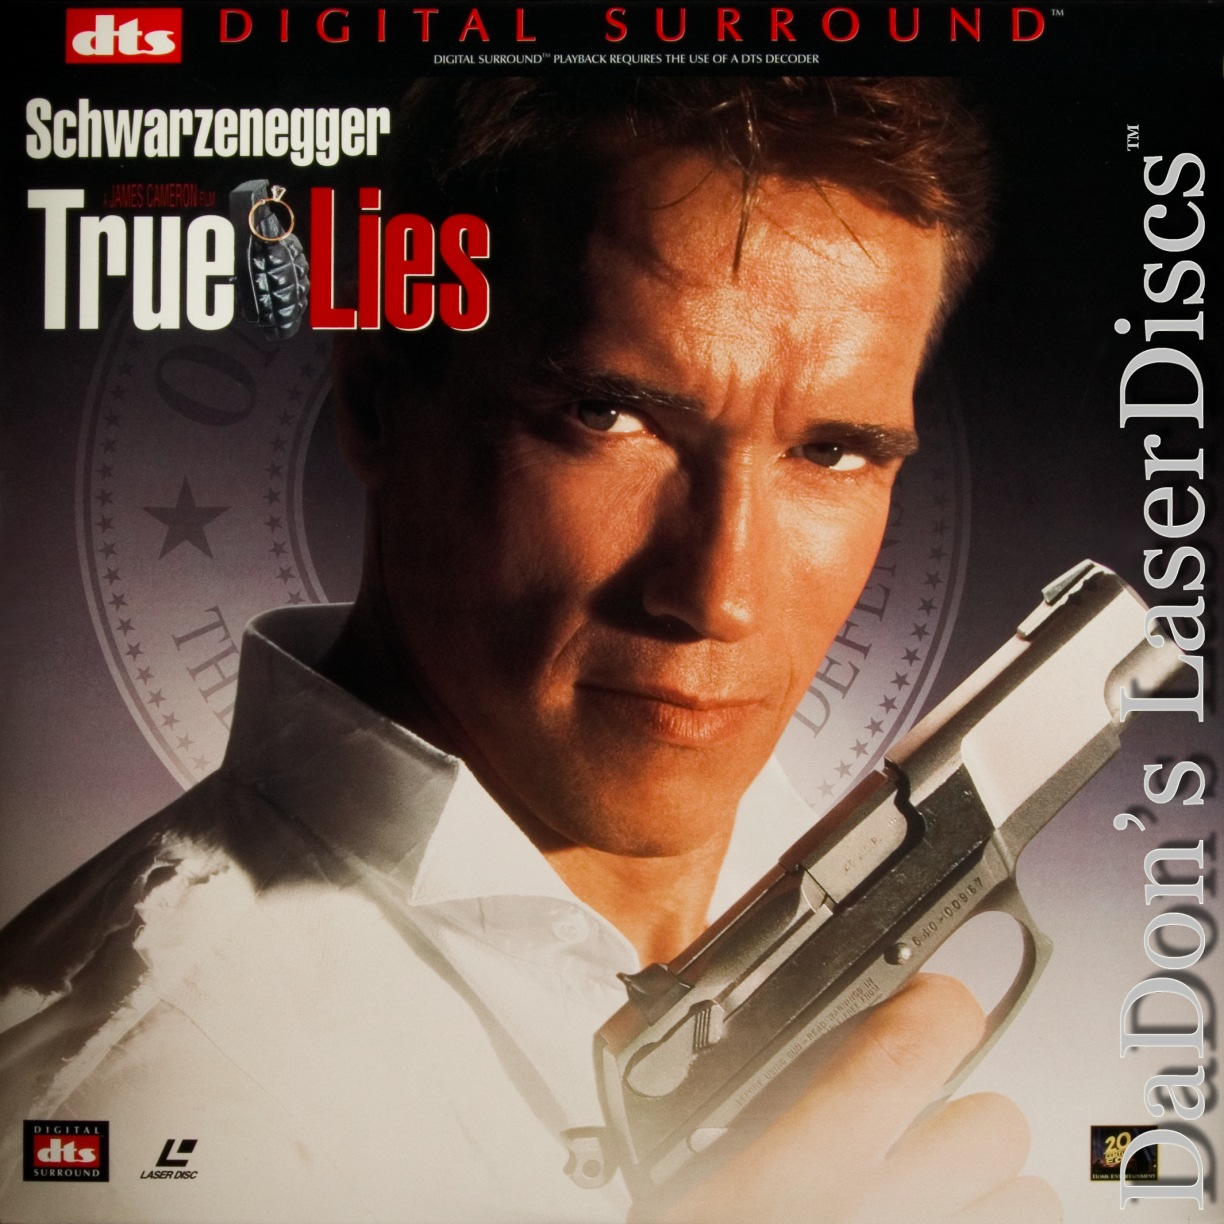 true lies summary The official website for big little lies on hbo, featuring full episodes online, interviews, schedule information and episode guides.